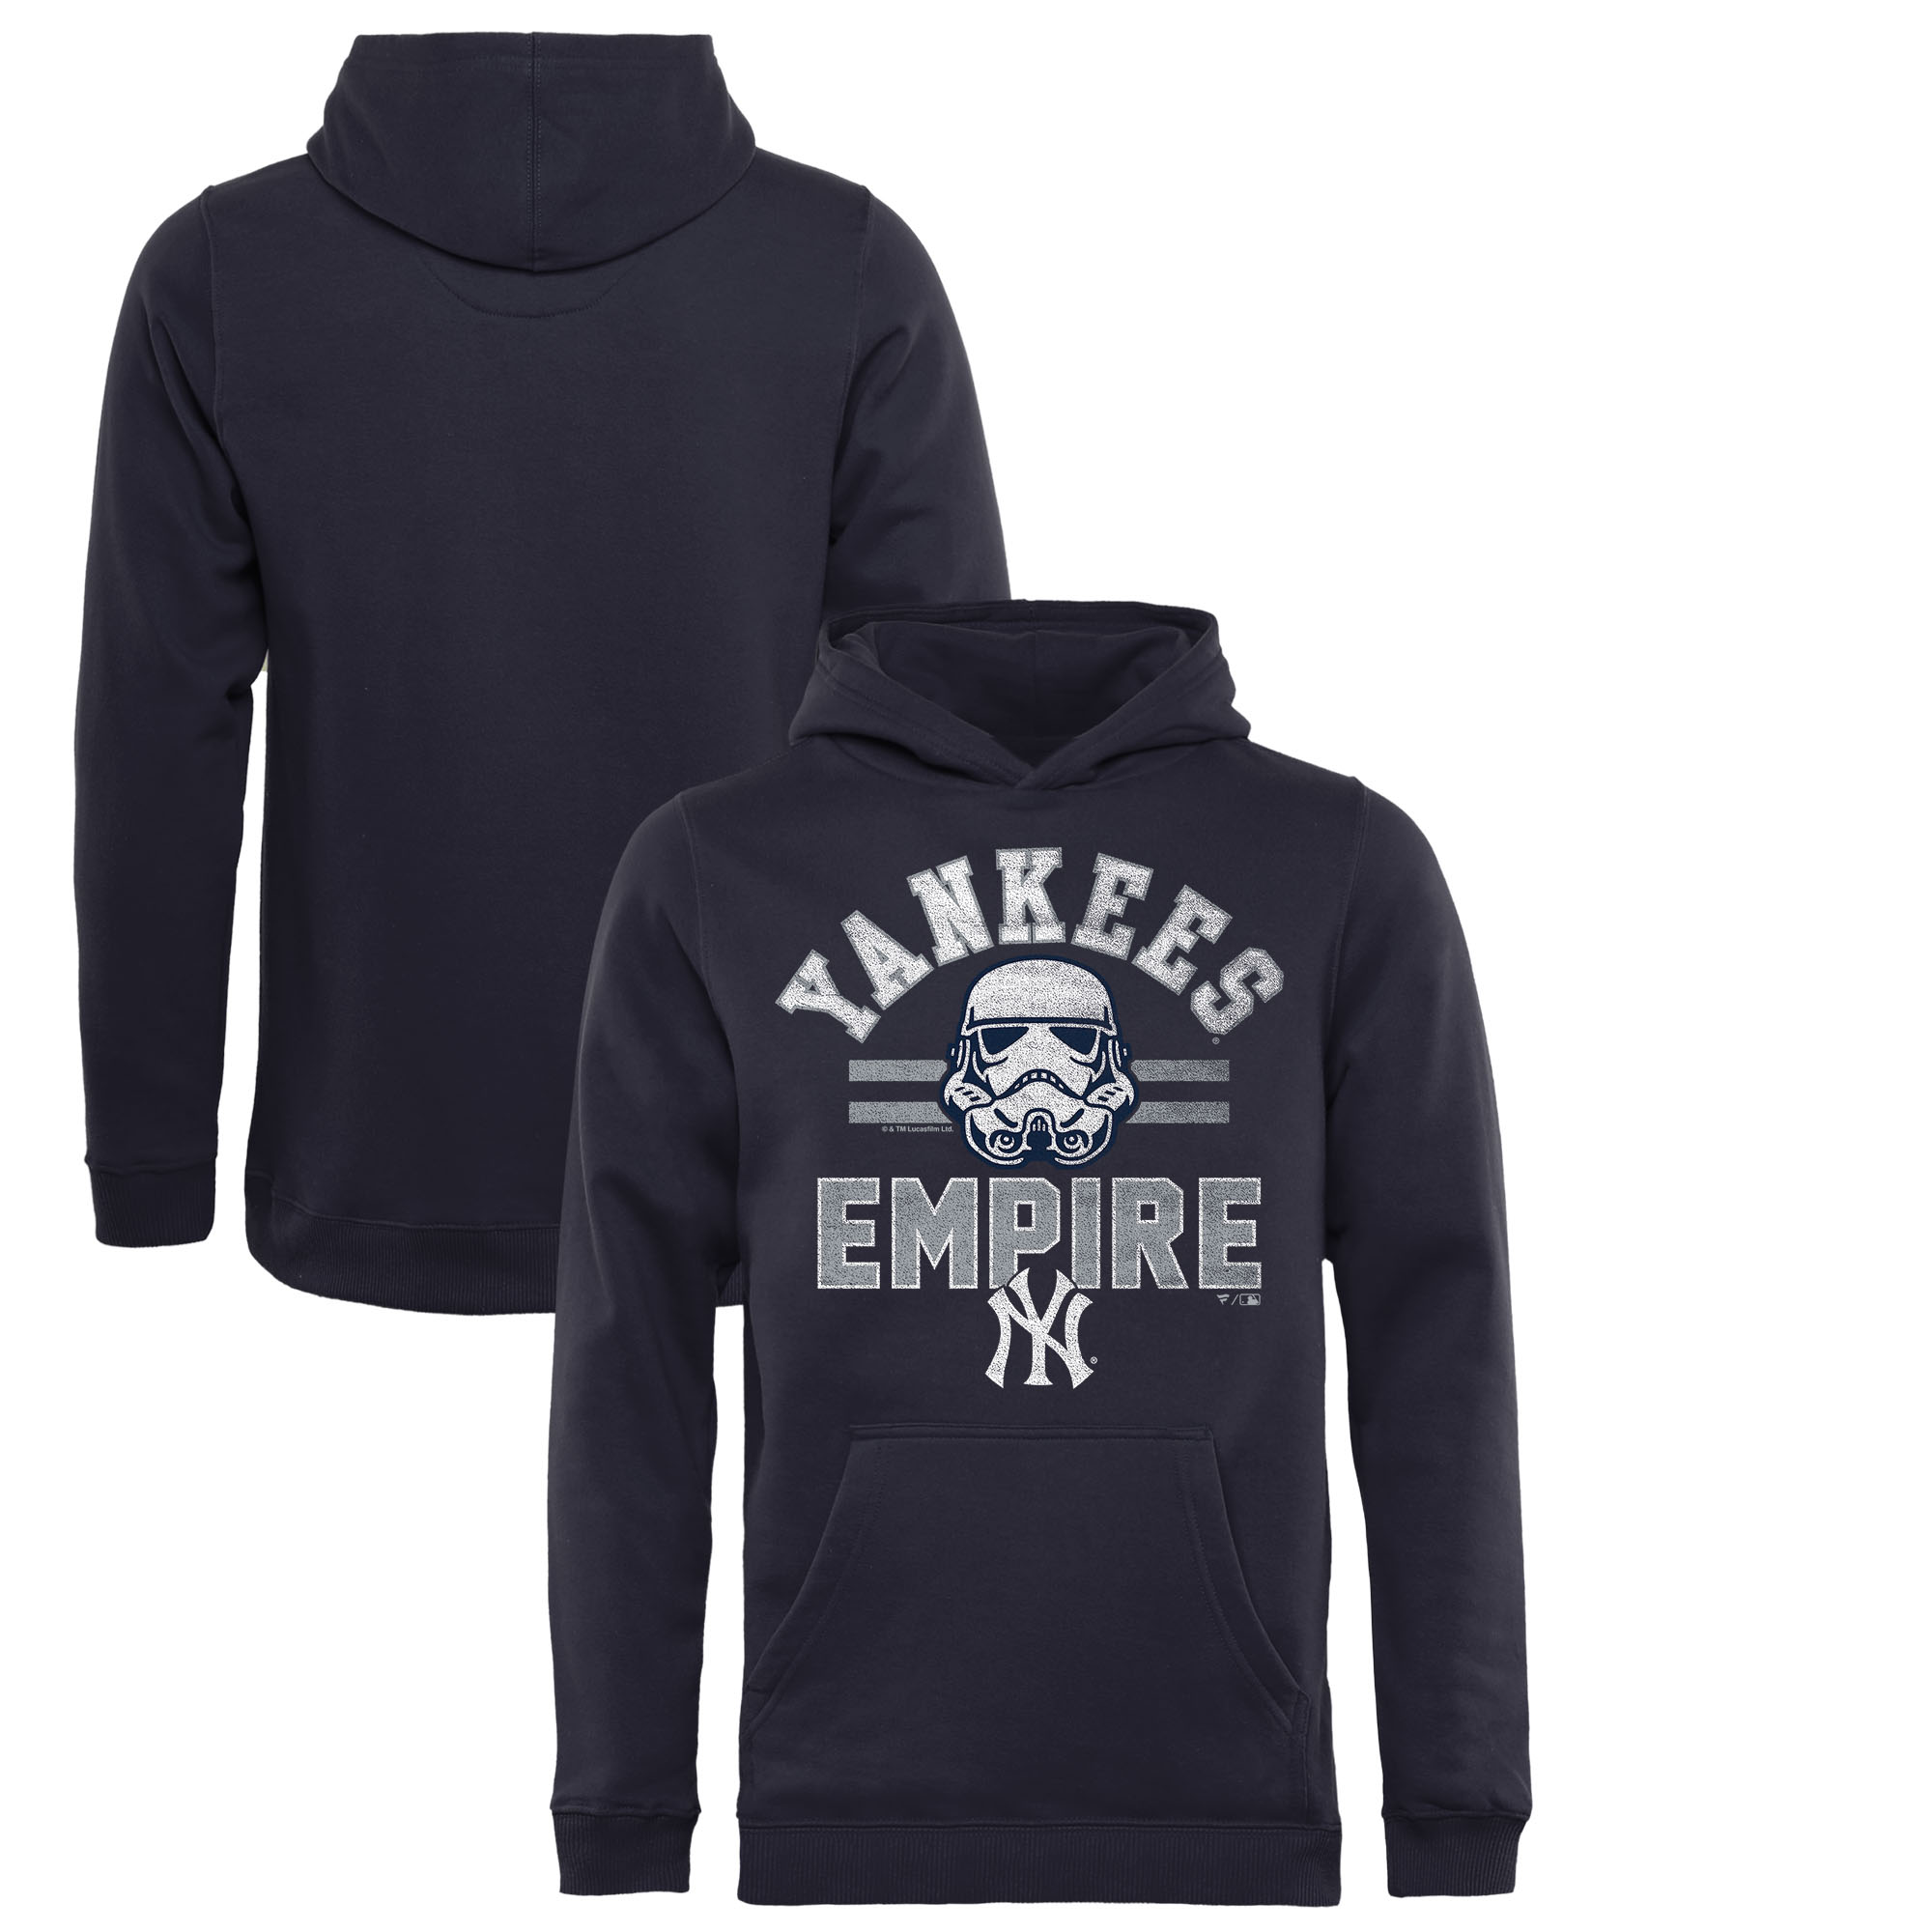 New York Yankees Fanatics Branded Youth MLB Star Wars Empire Pullover Hoodie - Navy